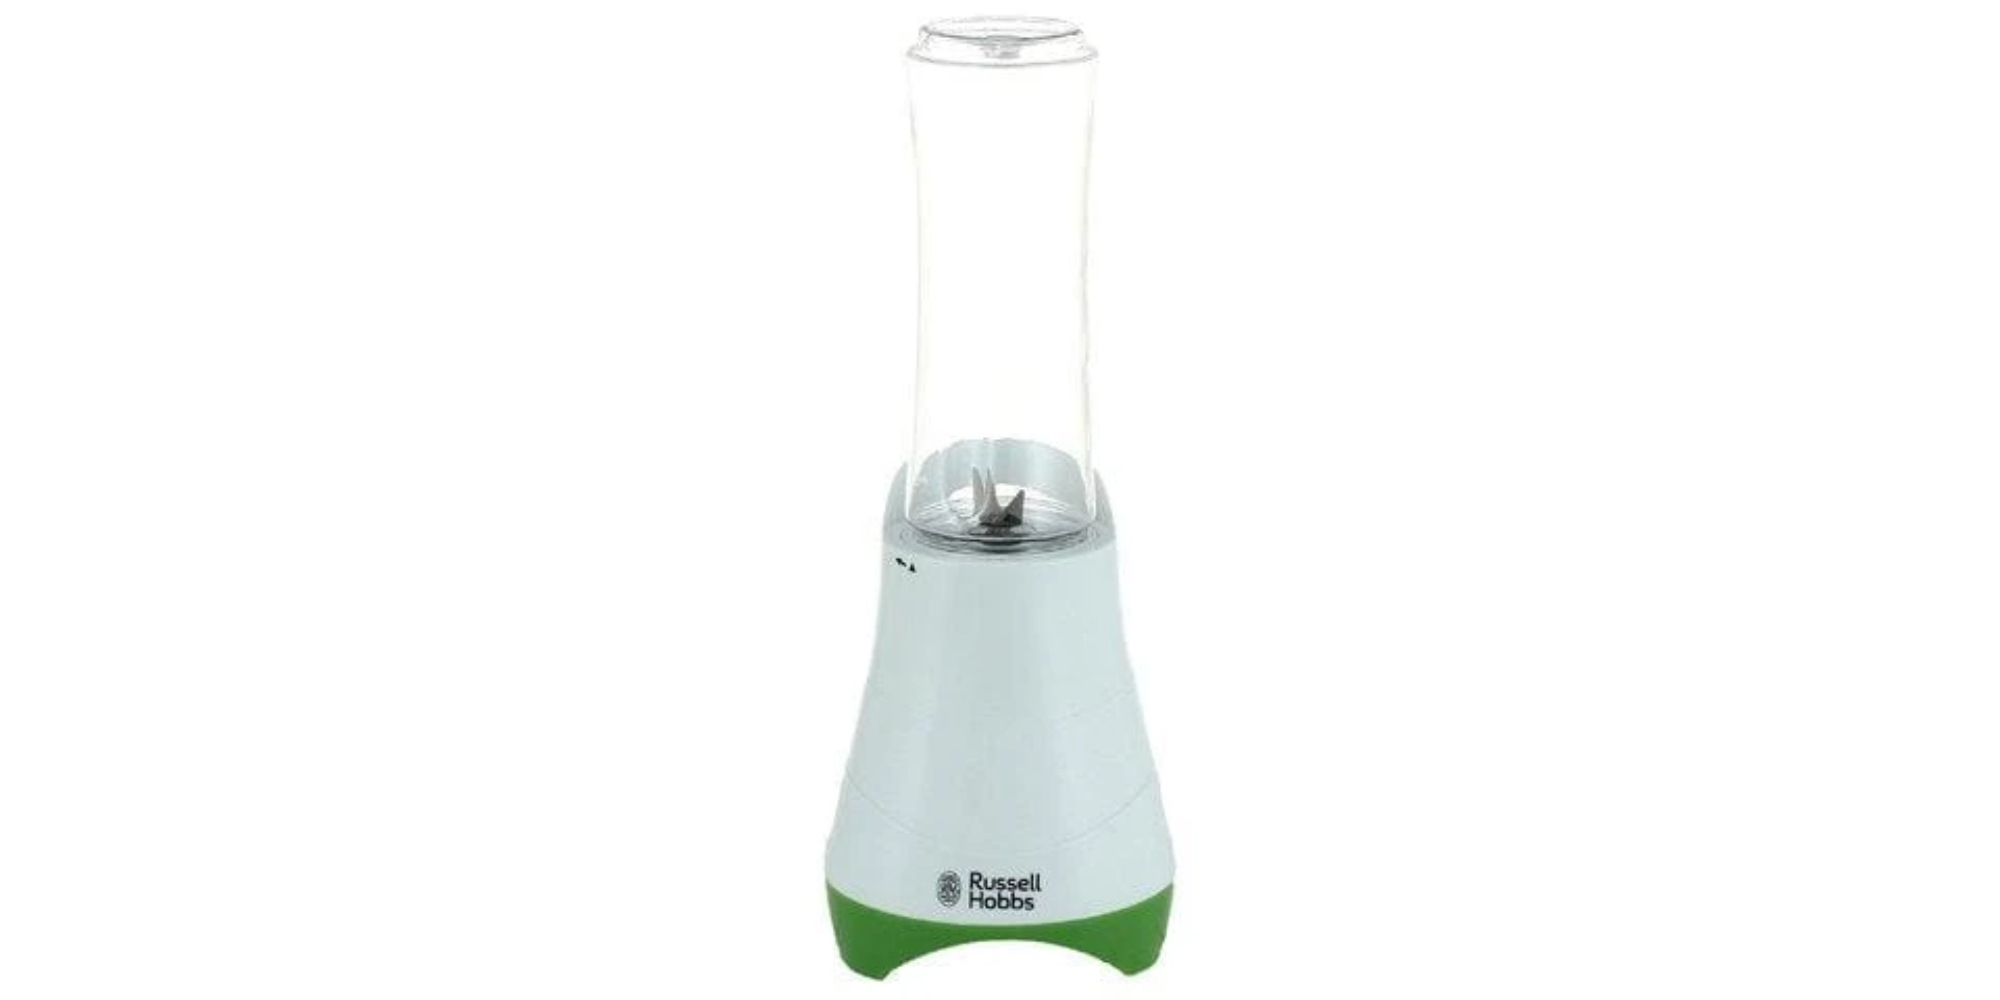 RUSSELL HOBBS 21350 SMOOTHIE MAKER